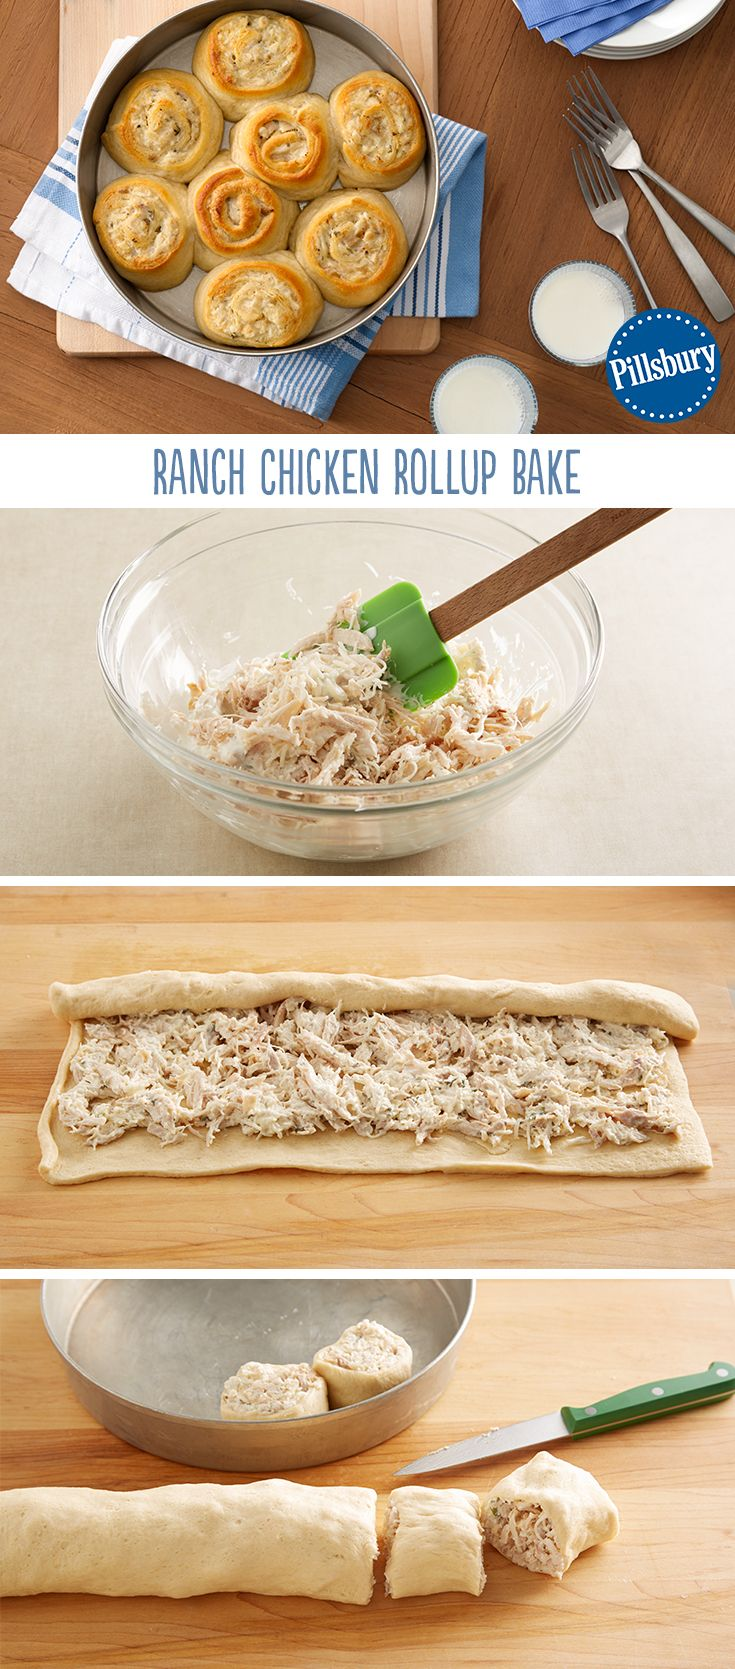 This recipe is sure to be a family favorite: Ranch Chicken Rollup Bake. You're only 5 delicious ingredients and 20 minutes prep away from a easy dinner. We recommend serving with a side salad.